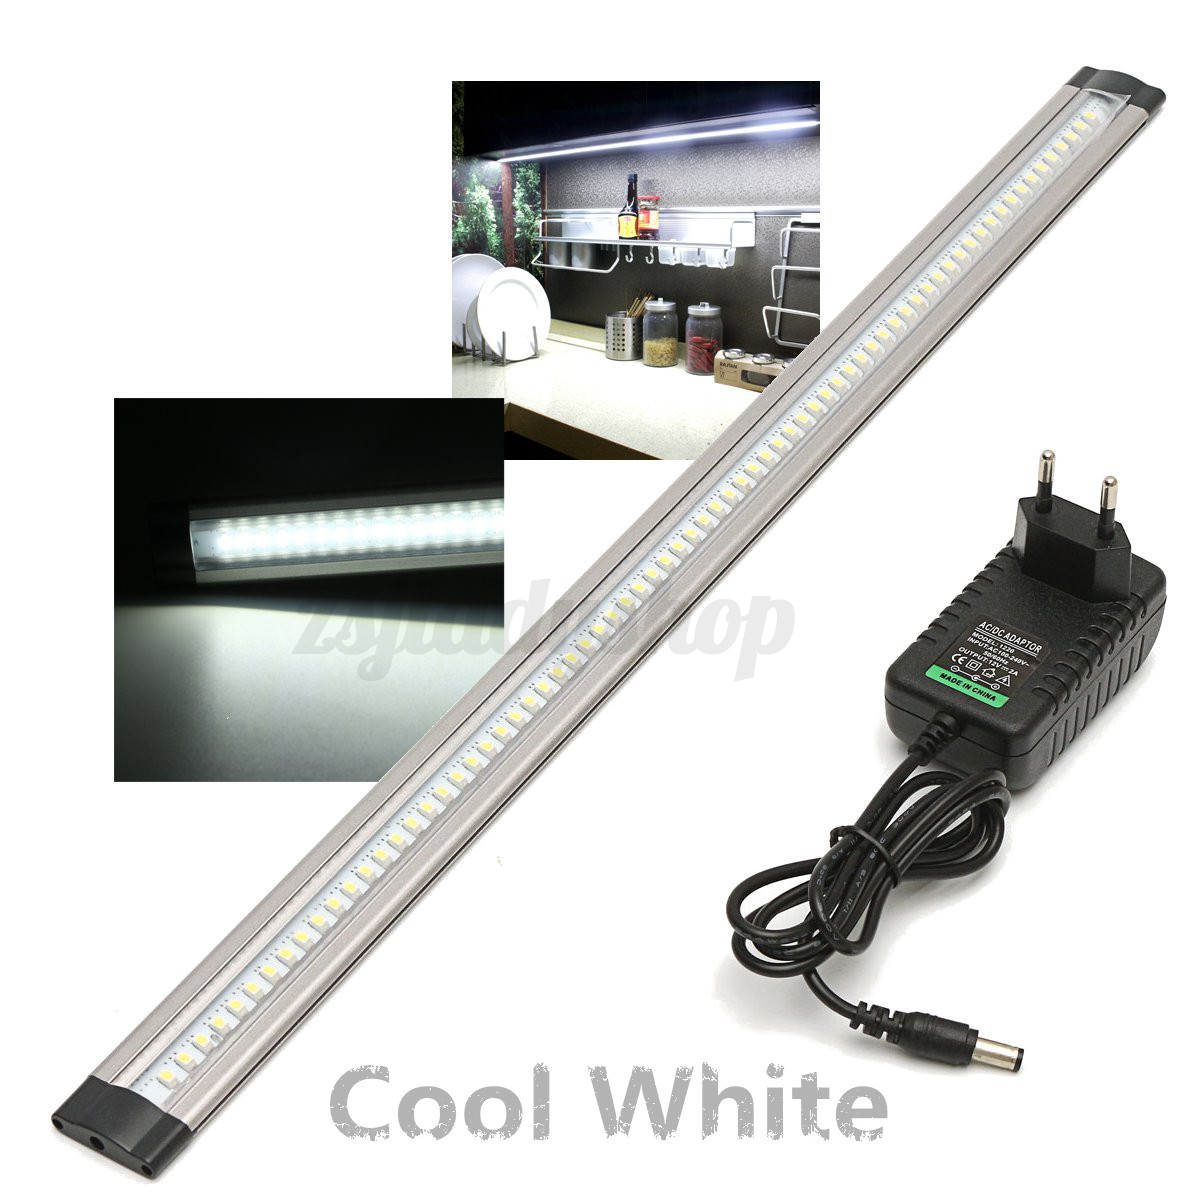 50cm led under cabinet cupboard induction lamp strip light eu plug home kitchen ebay for 50cm kitchen cabinets